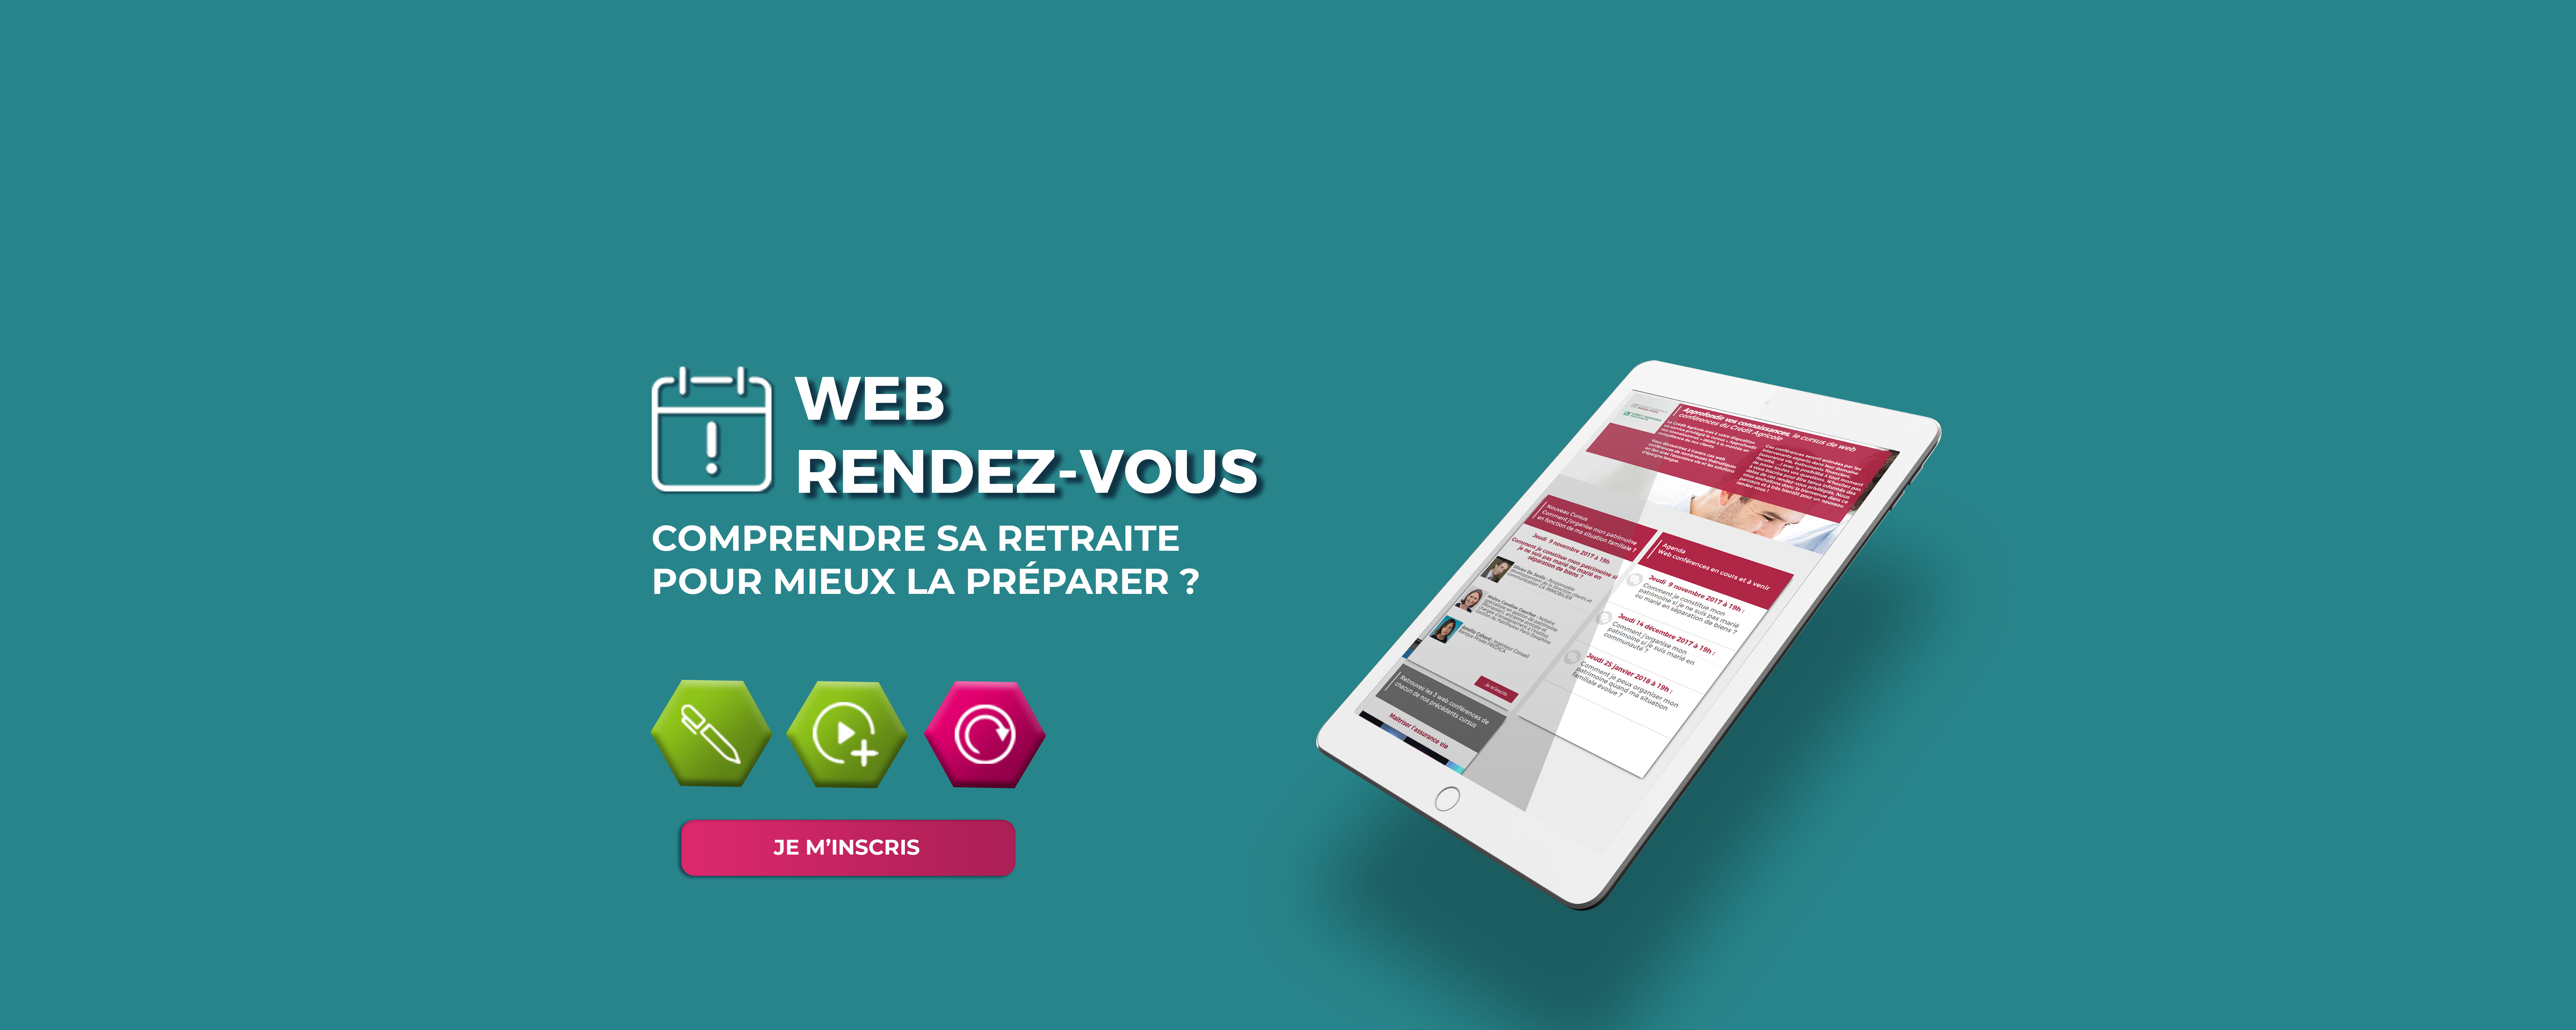 WEBCONFERENCE_29_03_2018_inscriptions